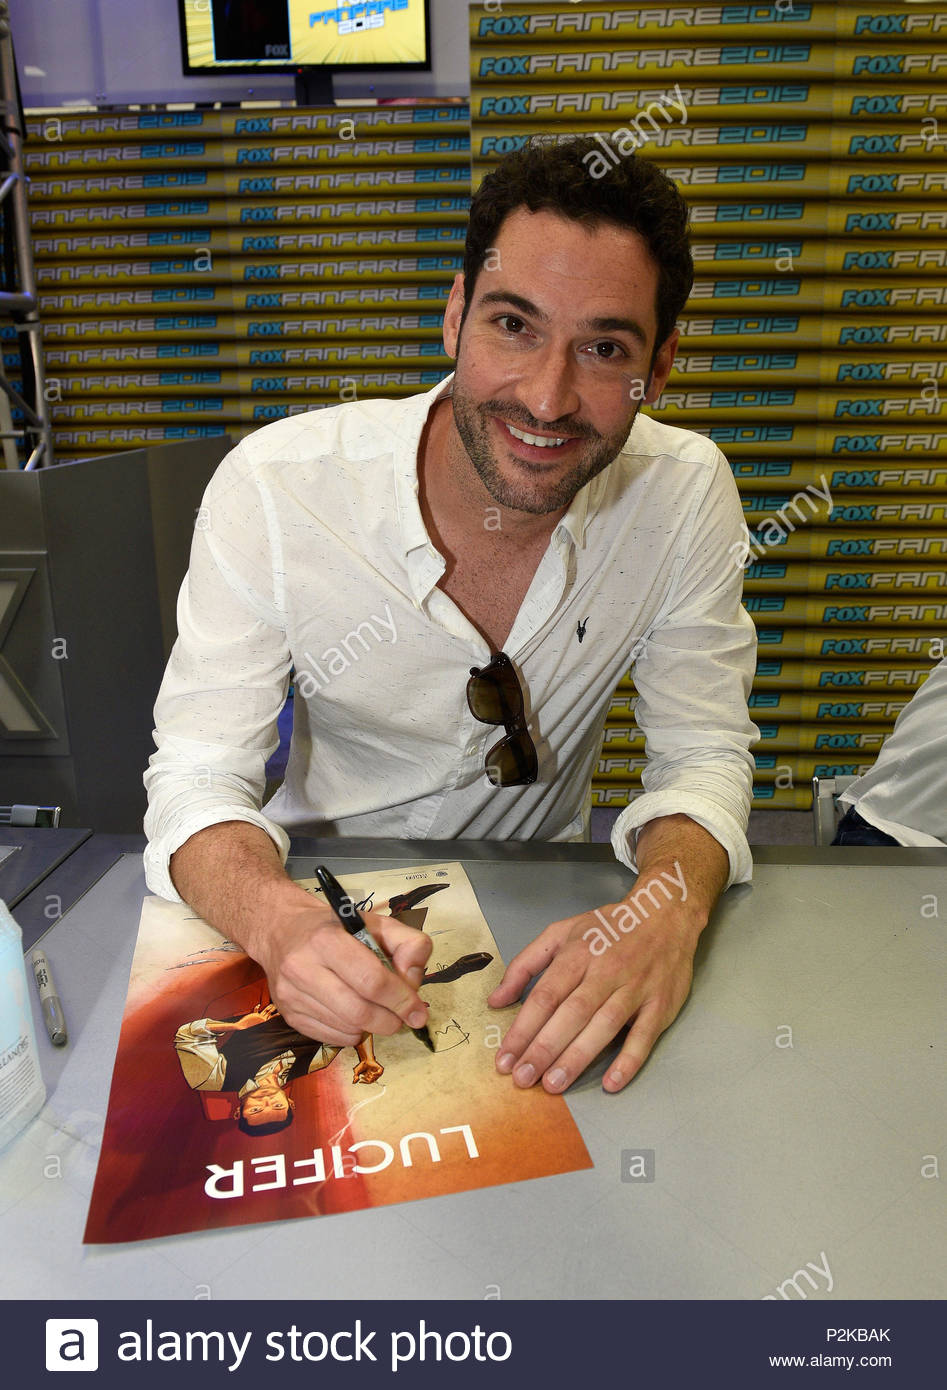 tom-ellis-comic-con-international-2015-in-san-diego-california-P2KBAK.jpg